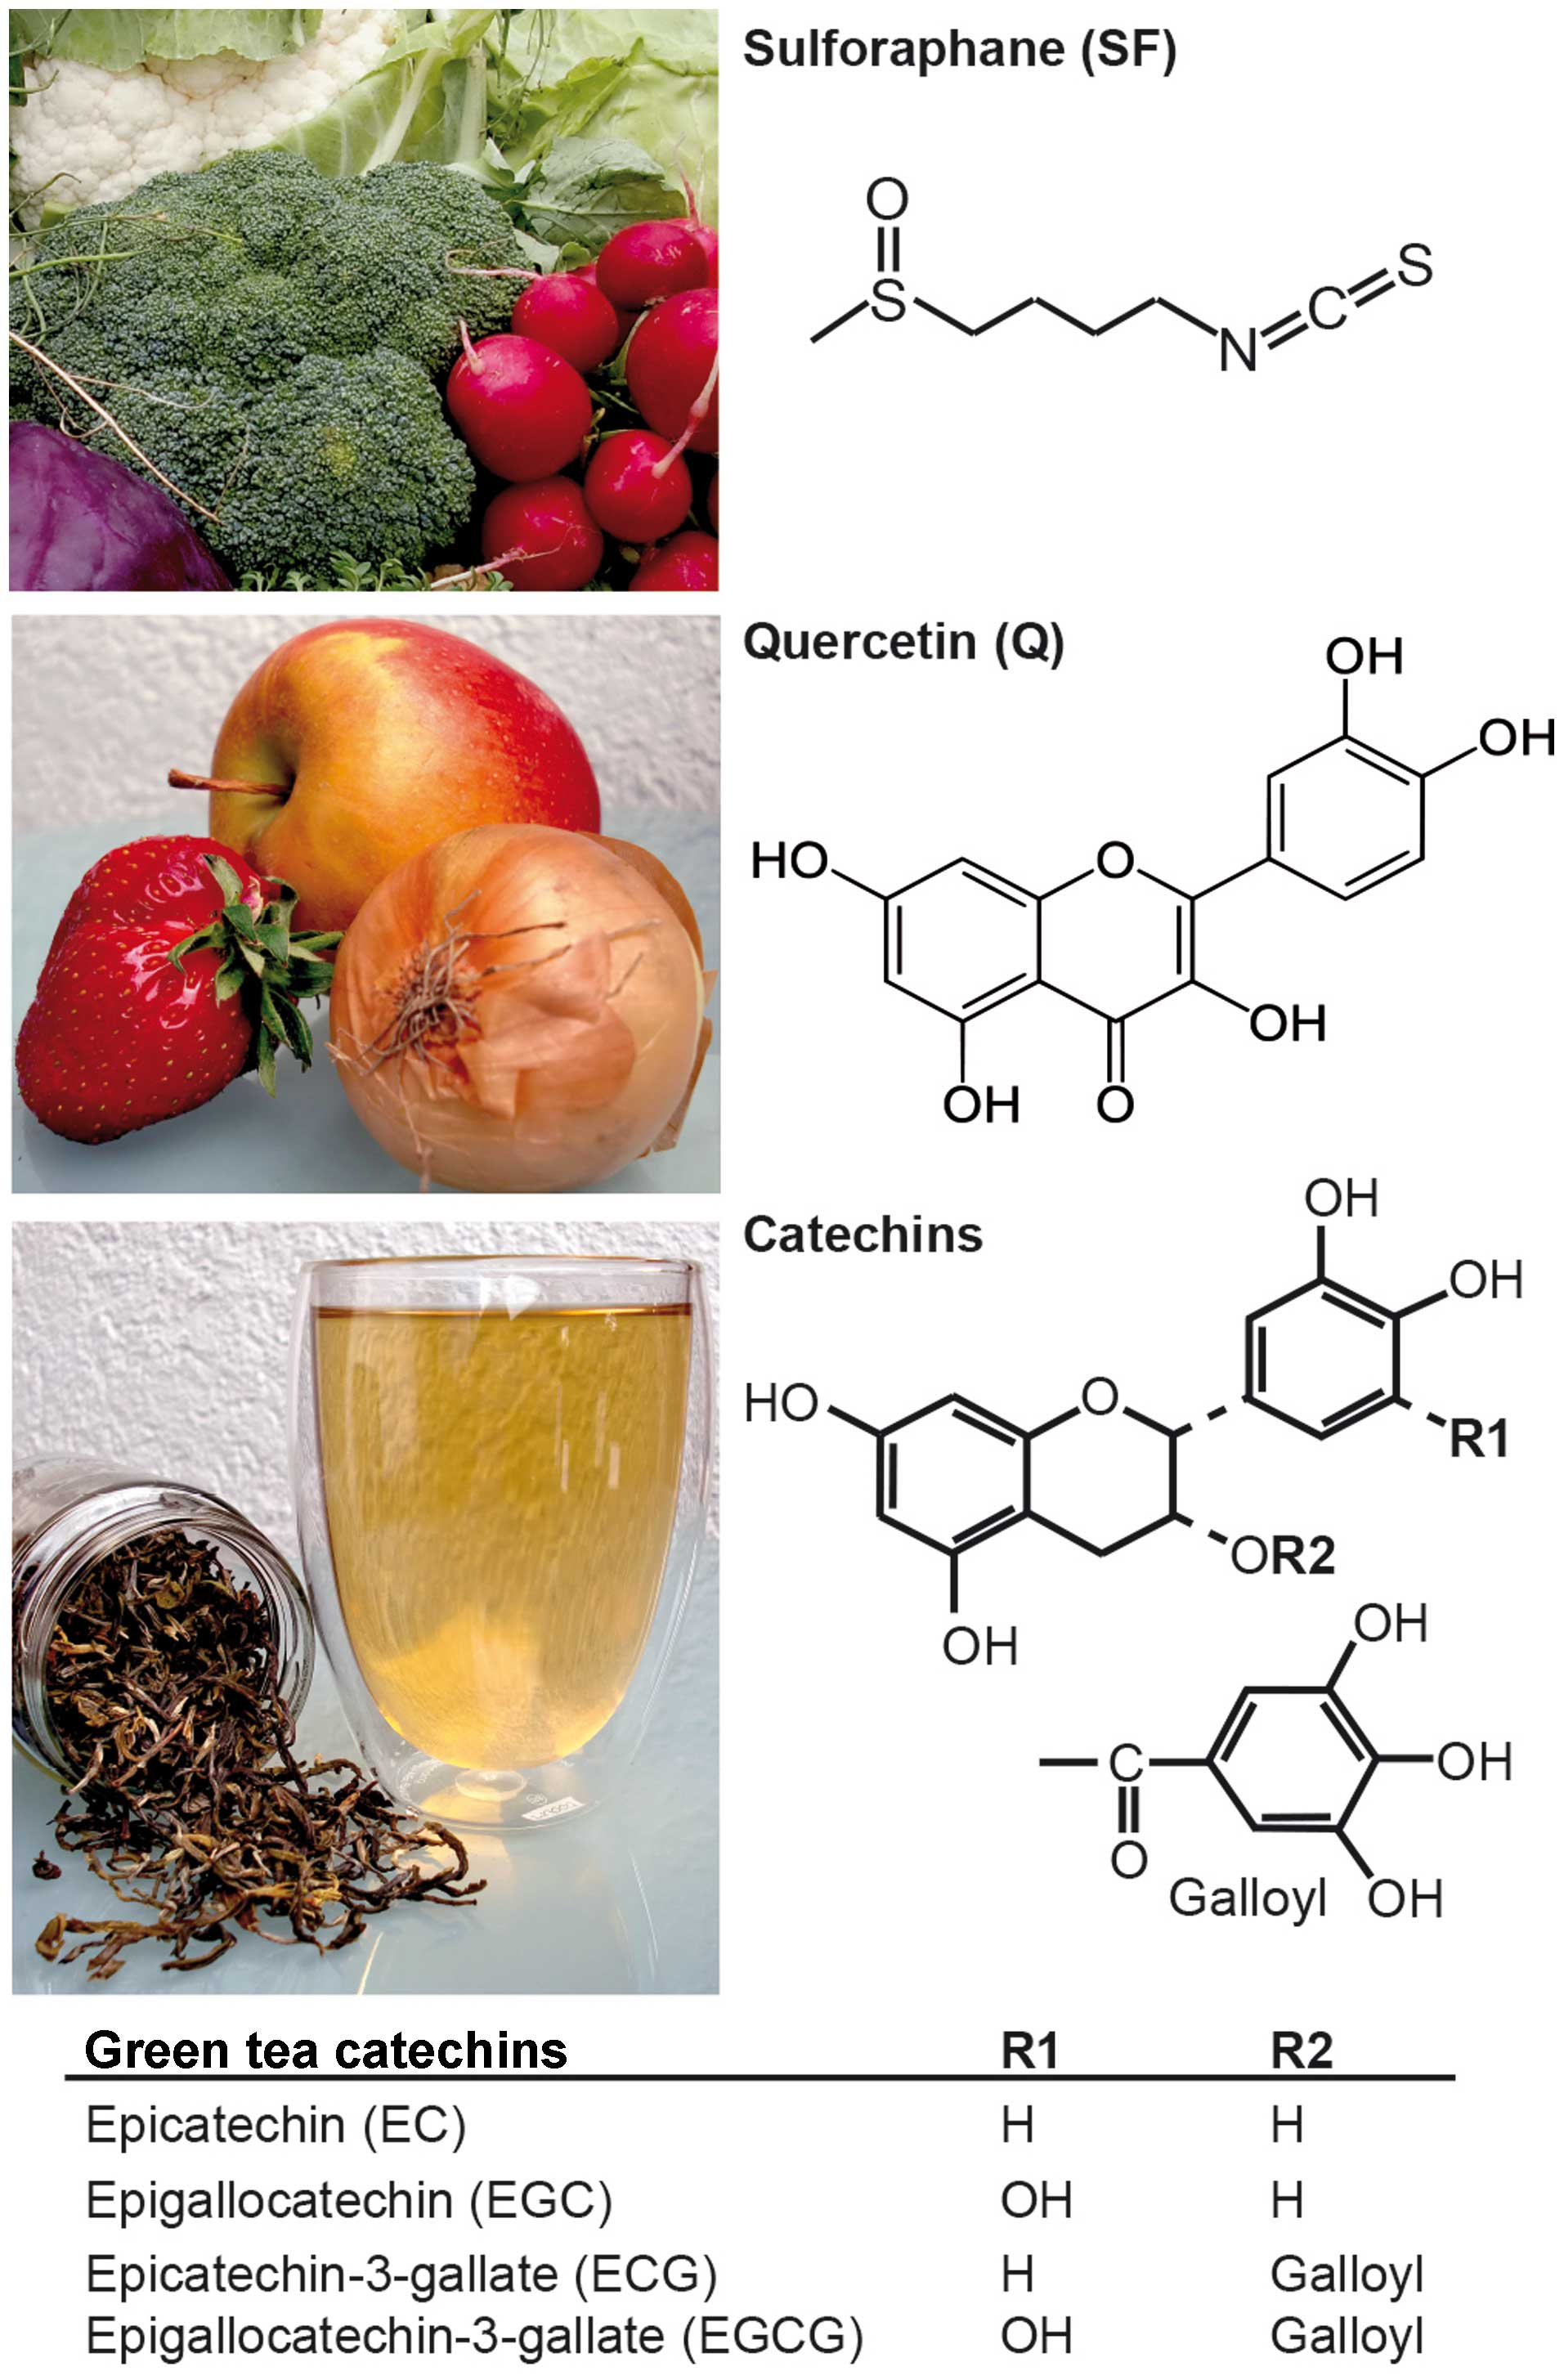 Sulforaphane Quercetin And Catechins Complement Each